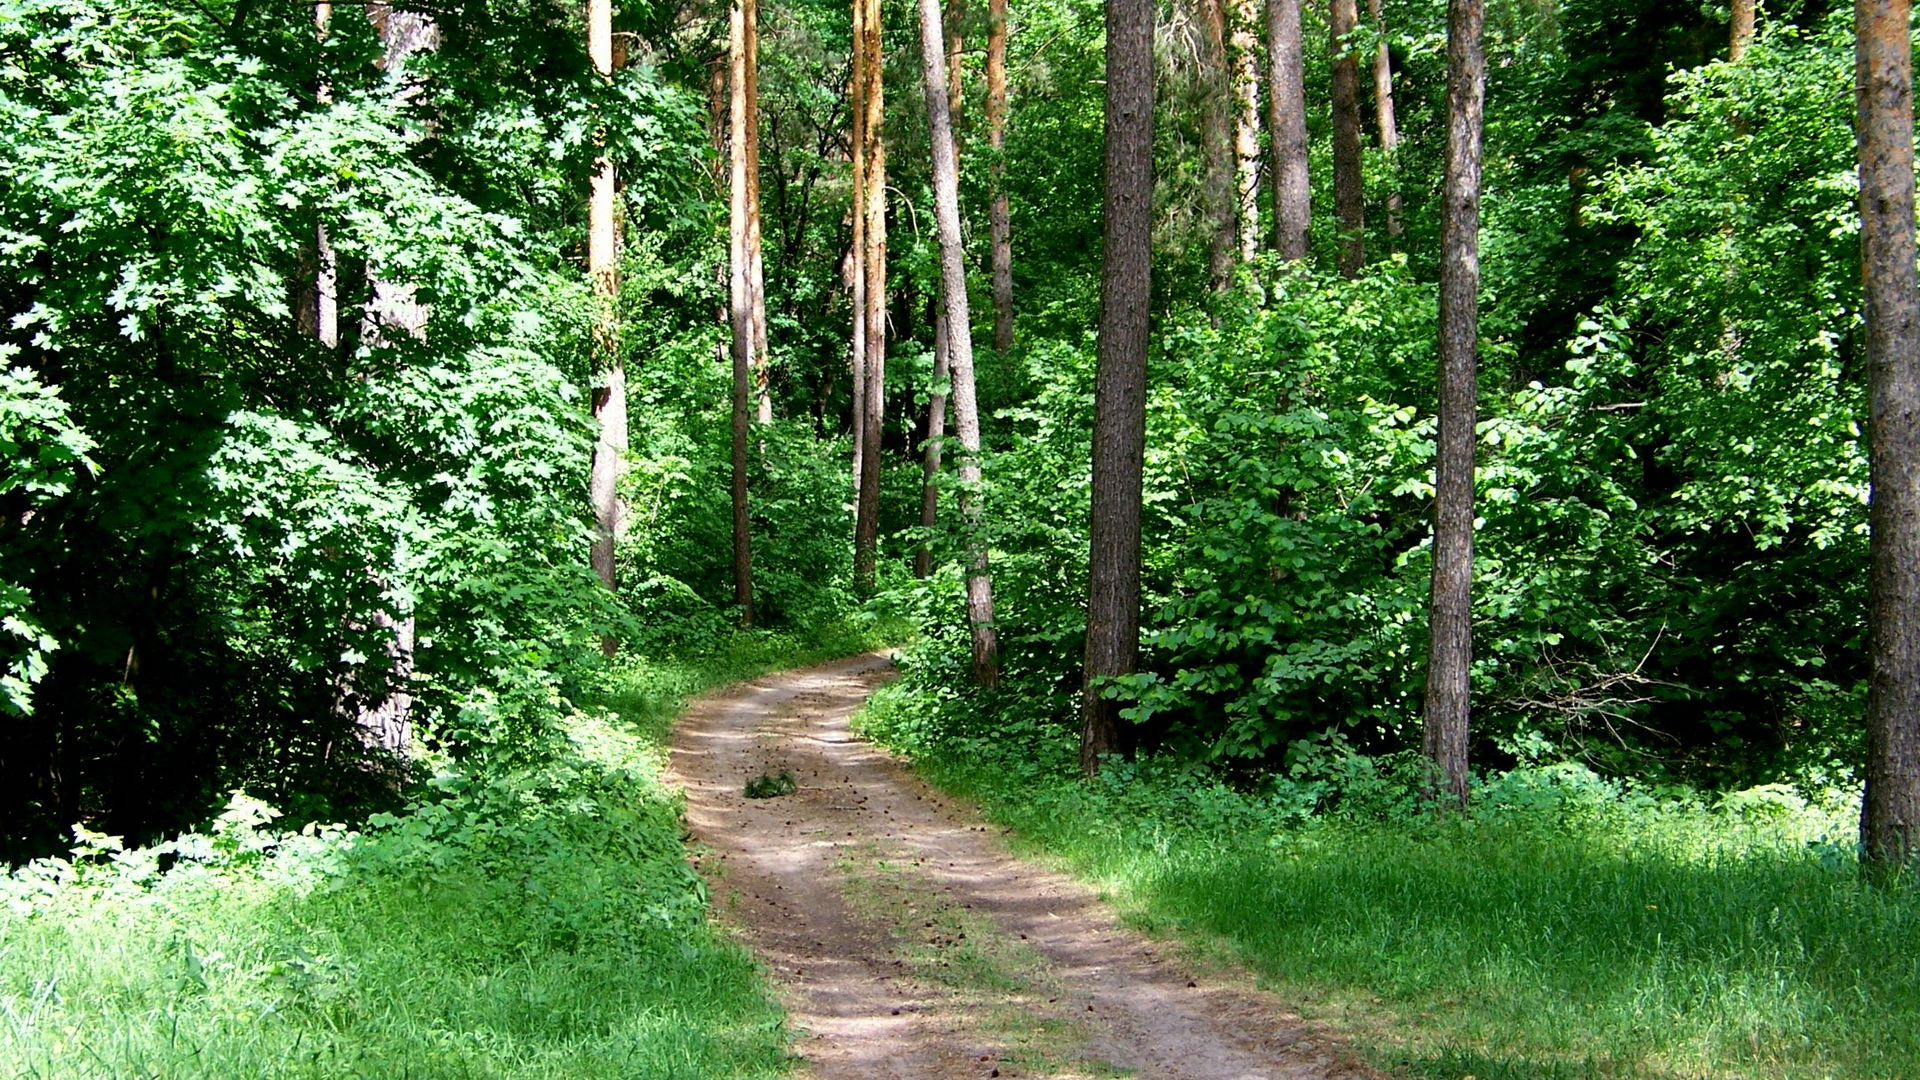 click to free download the wallpaper--Natural Scenery images - A Narrow and Earthy Road in the Middle of the Forest, Amazing Walking Experience 1920X1080 free wallpaper download